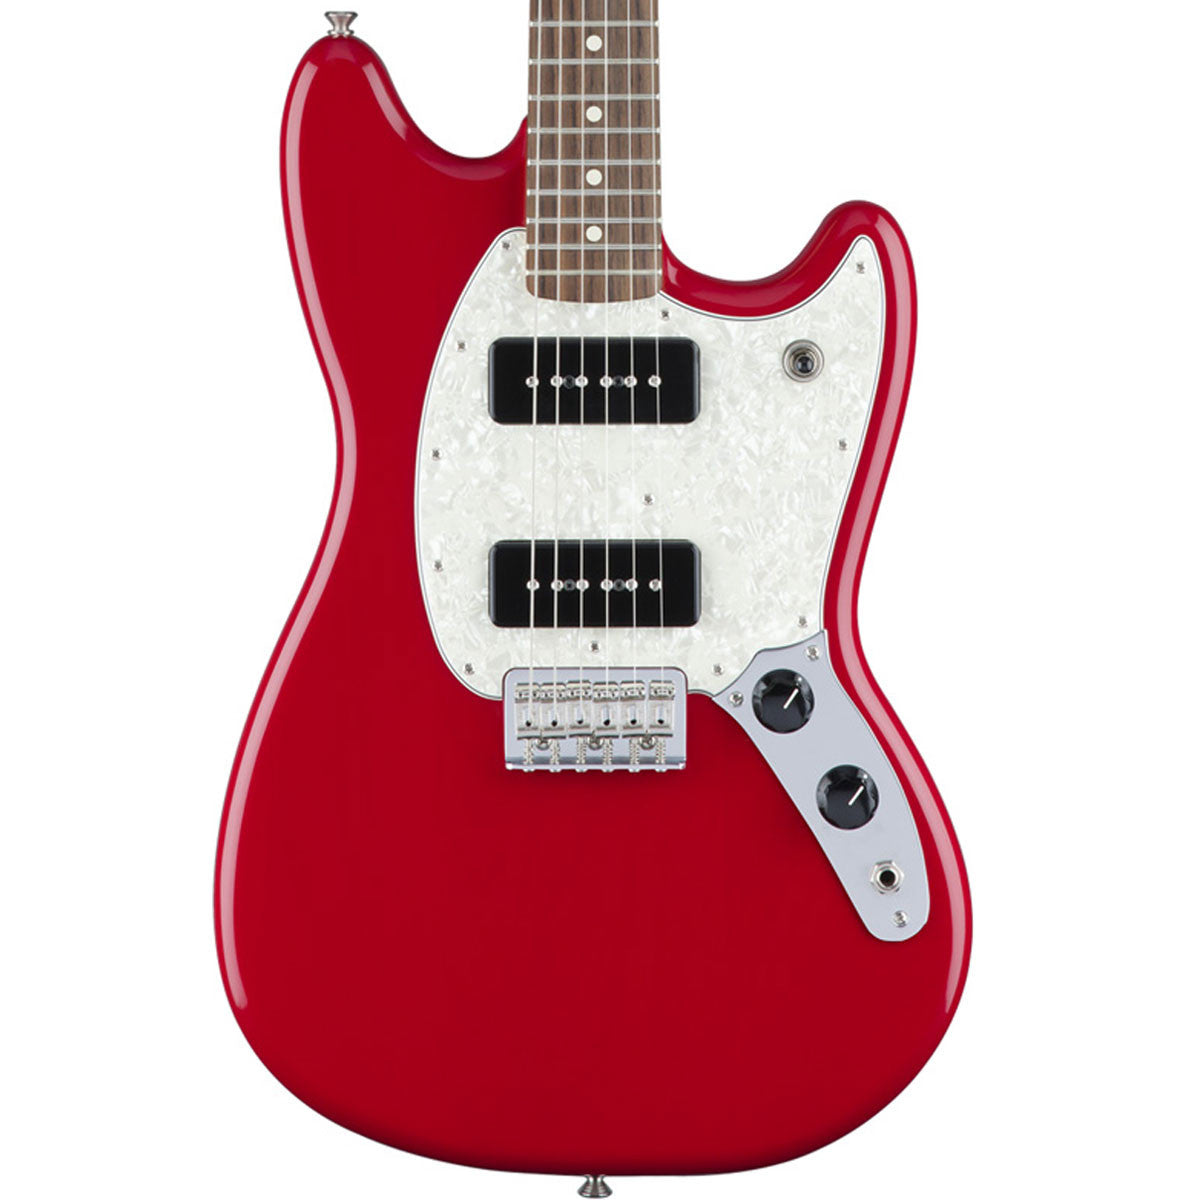 Fender Mustang 90 - Rosewood - Torino Red - Vintage Guitar Boutique